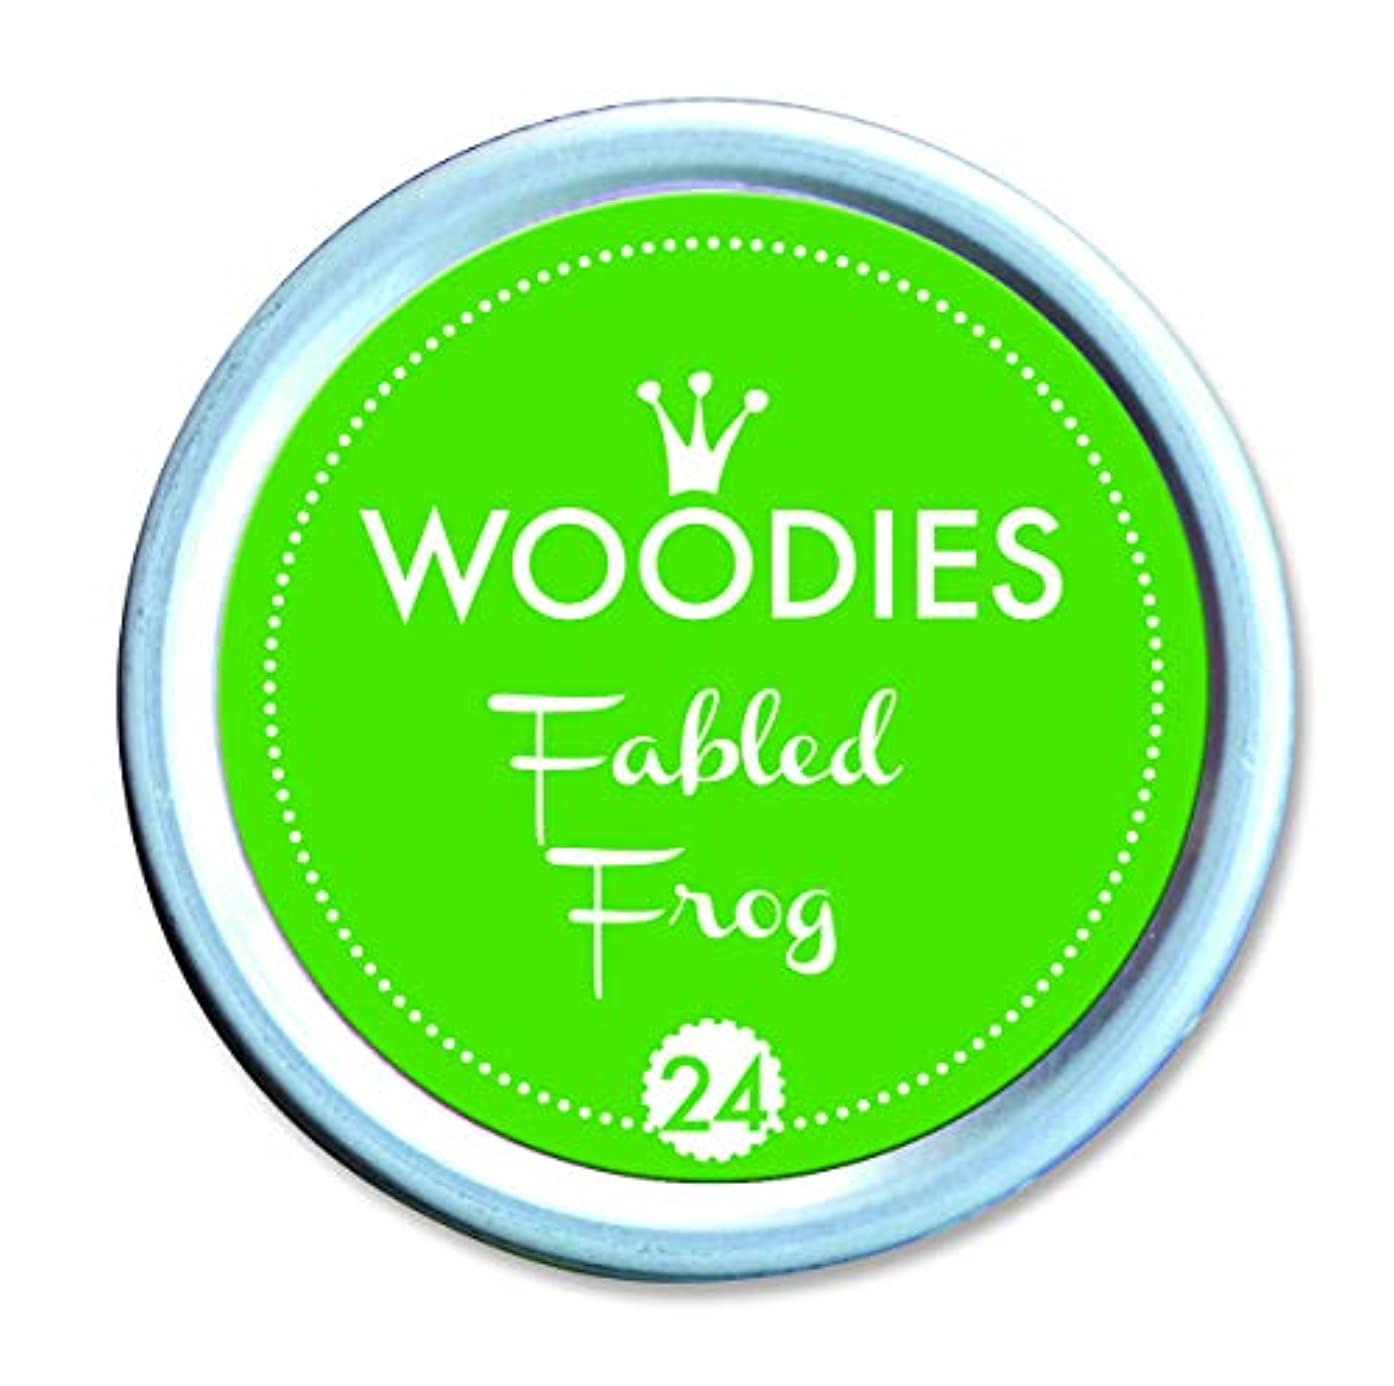 WOODIES Stamp Pad Ink Tin, Fabled Frog (072051)